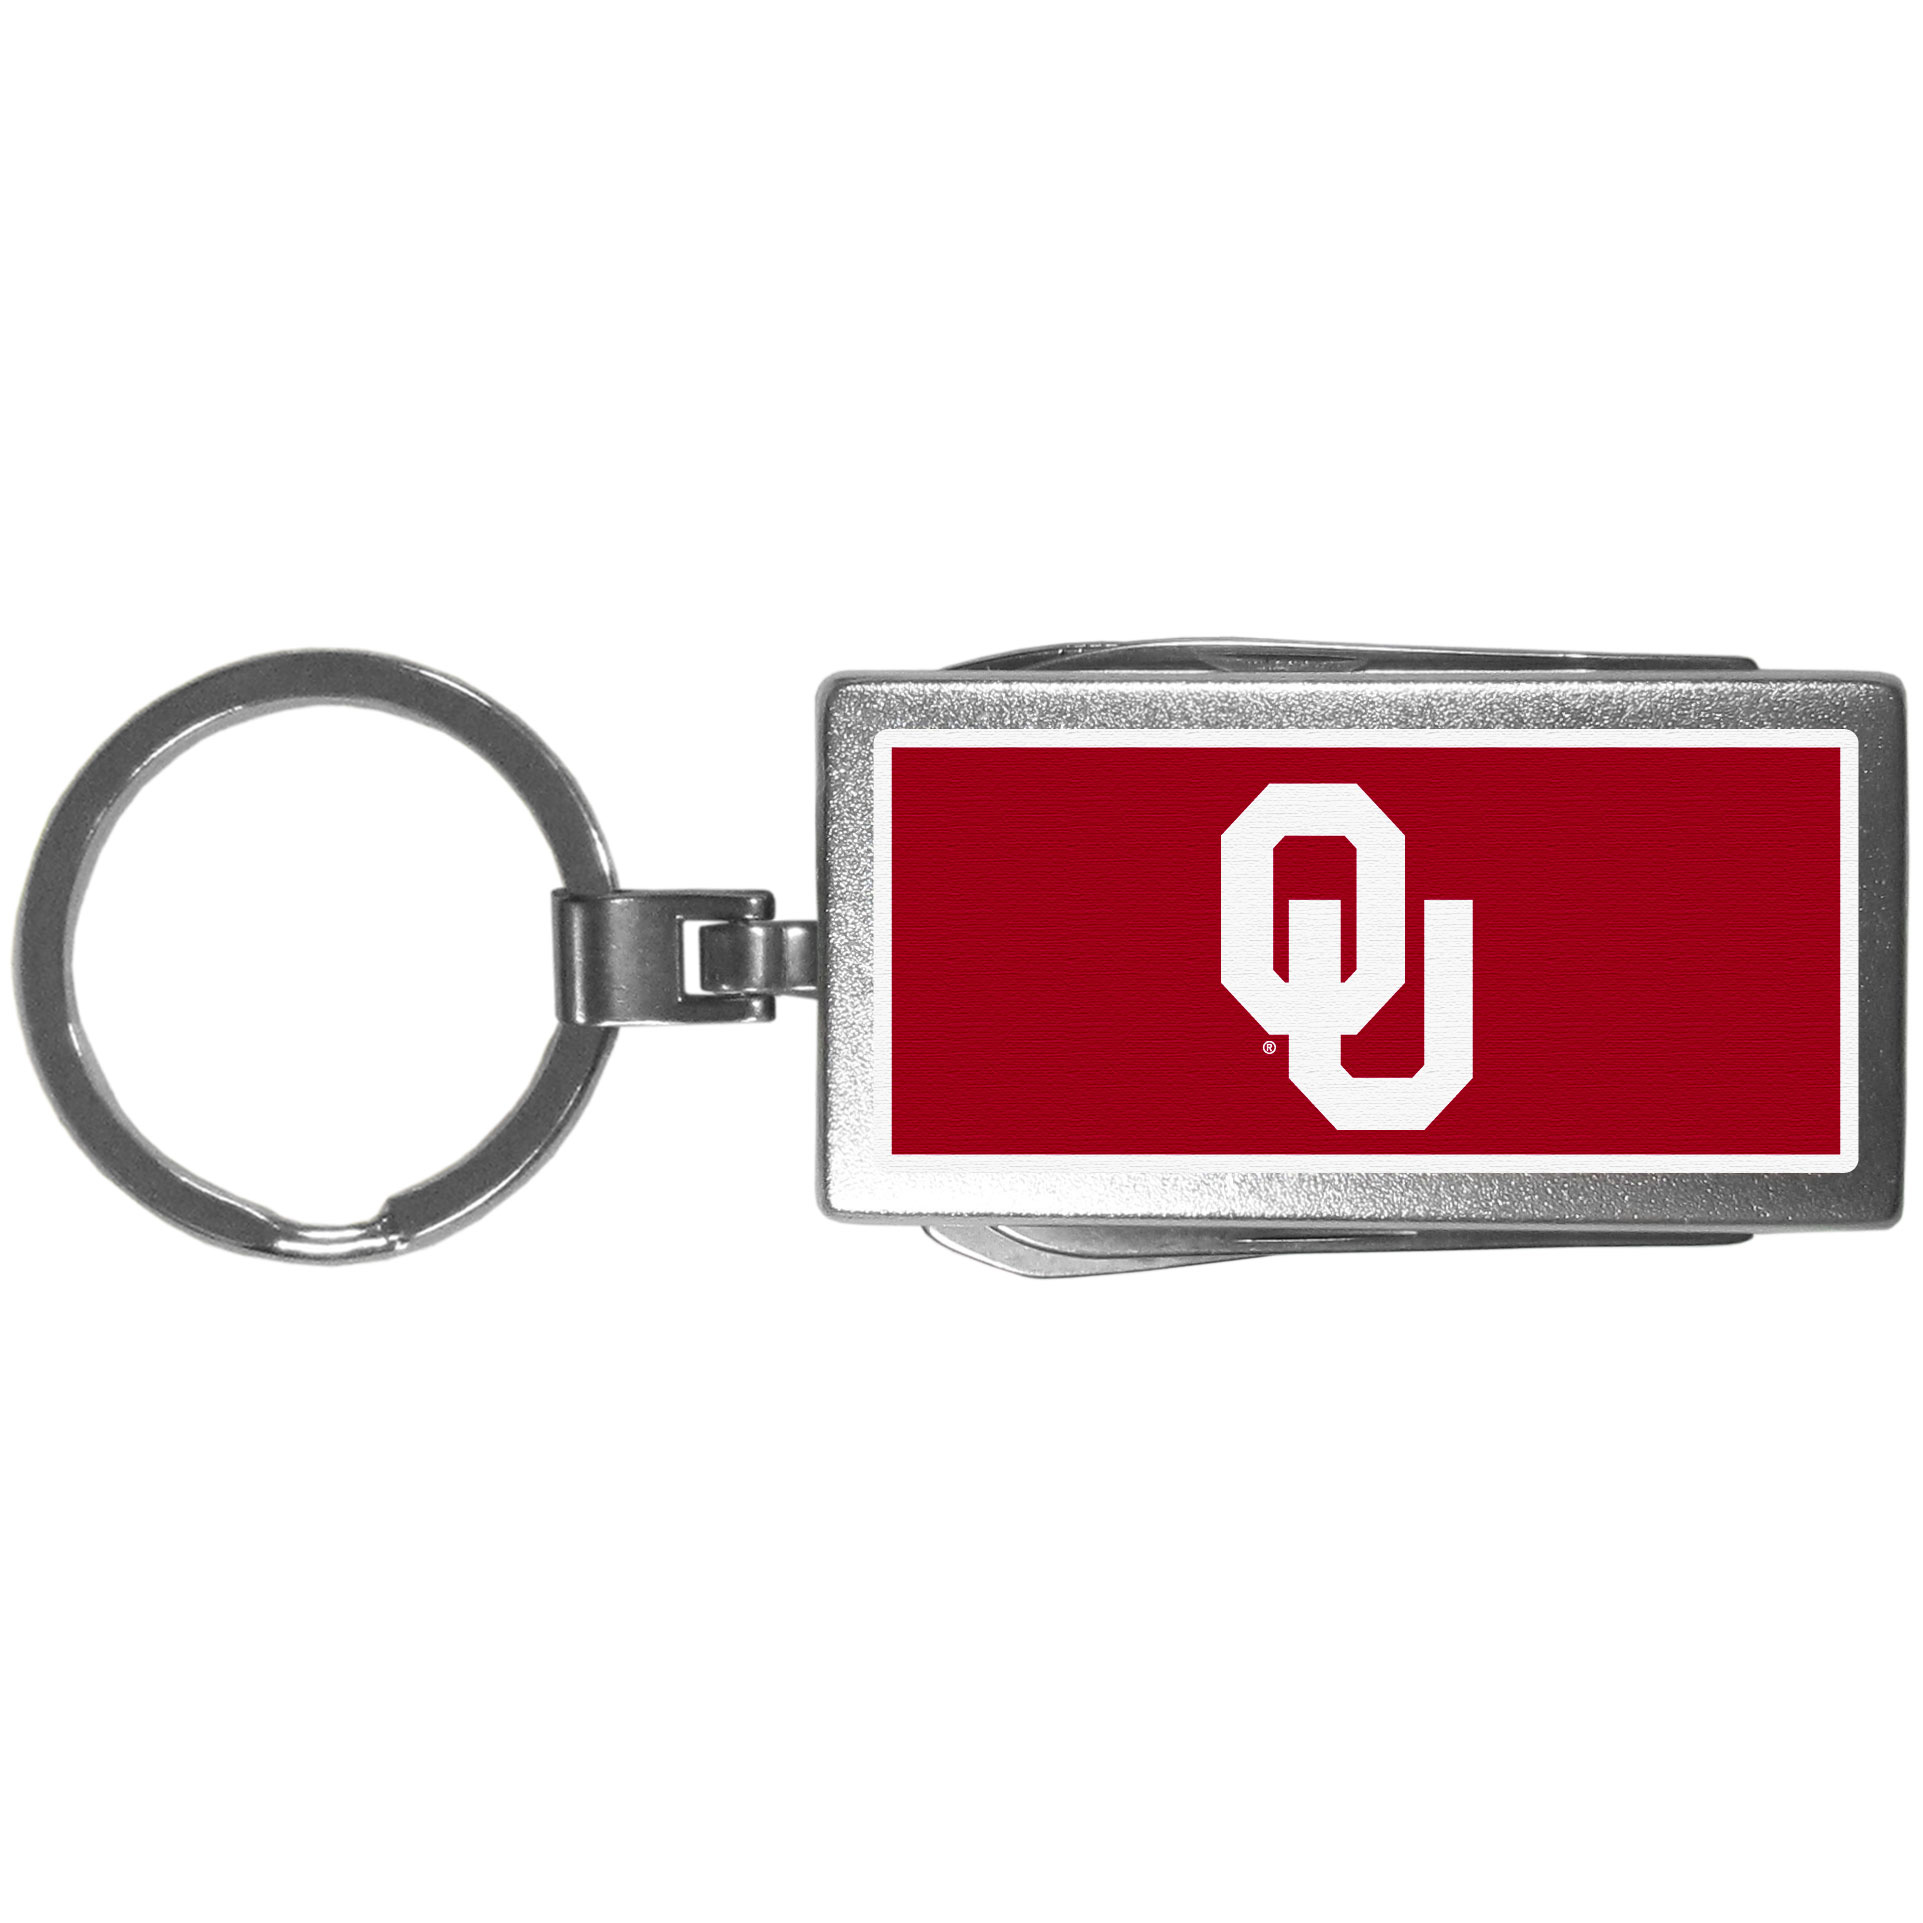 Oklahoma Sooners Multi-tool Key Chain, Logo - Be the hero at the tailgate, camping, or on a Friday night with your Oklahoma Sooners Multi-Tool Keychain which comes complete with bottle opener, scissors, knife, nail file and screw driver. Be it opening a package or a beverage Siskiyou's Multi-Tool Keychain goes wherever your keys do. The keychain hangs at 4 inches long when closed.